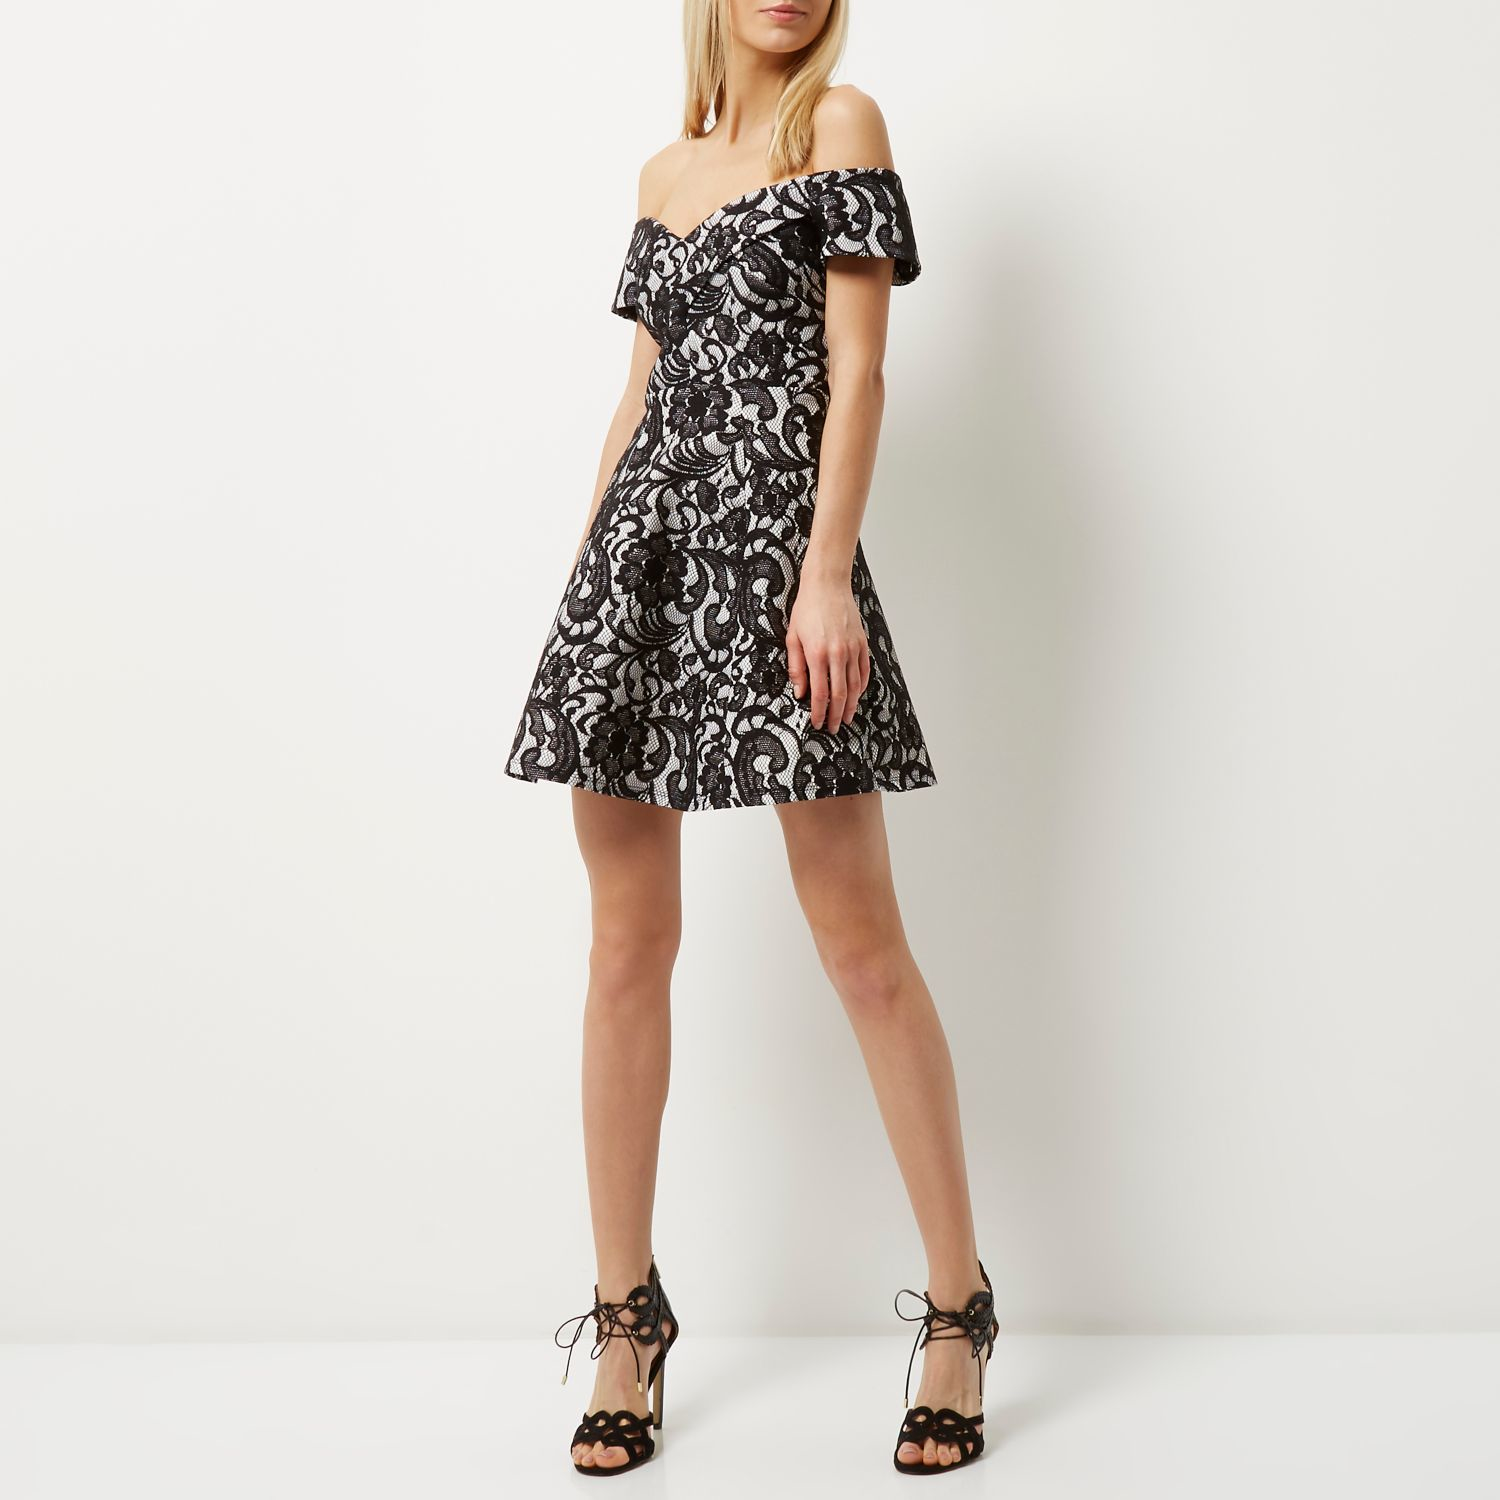 River Island now deliver to over countries worldwide for full details view our International delivery page.